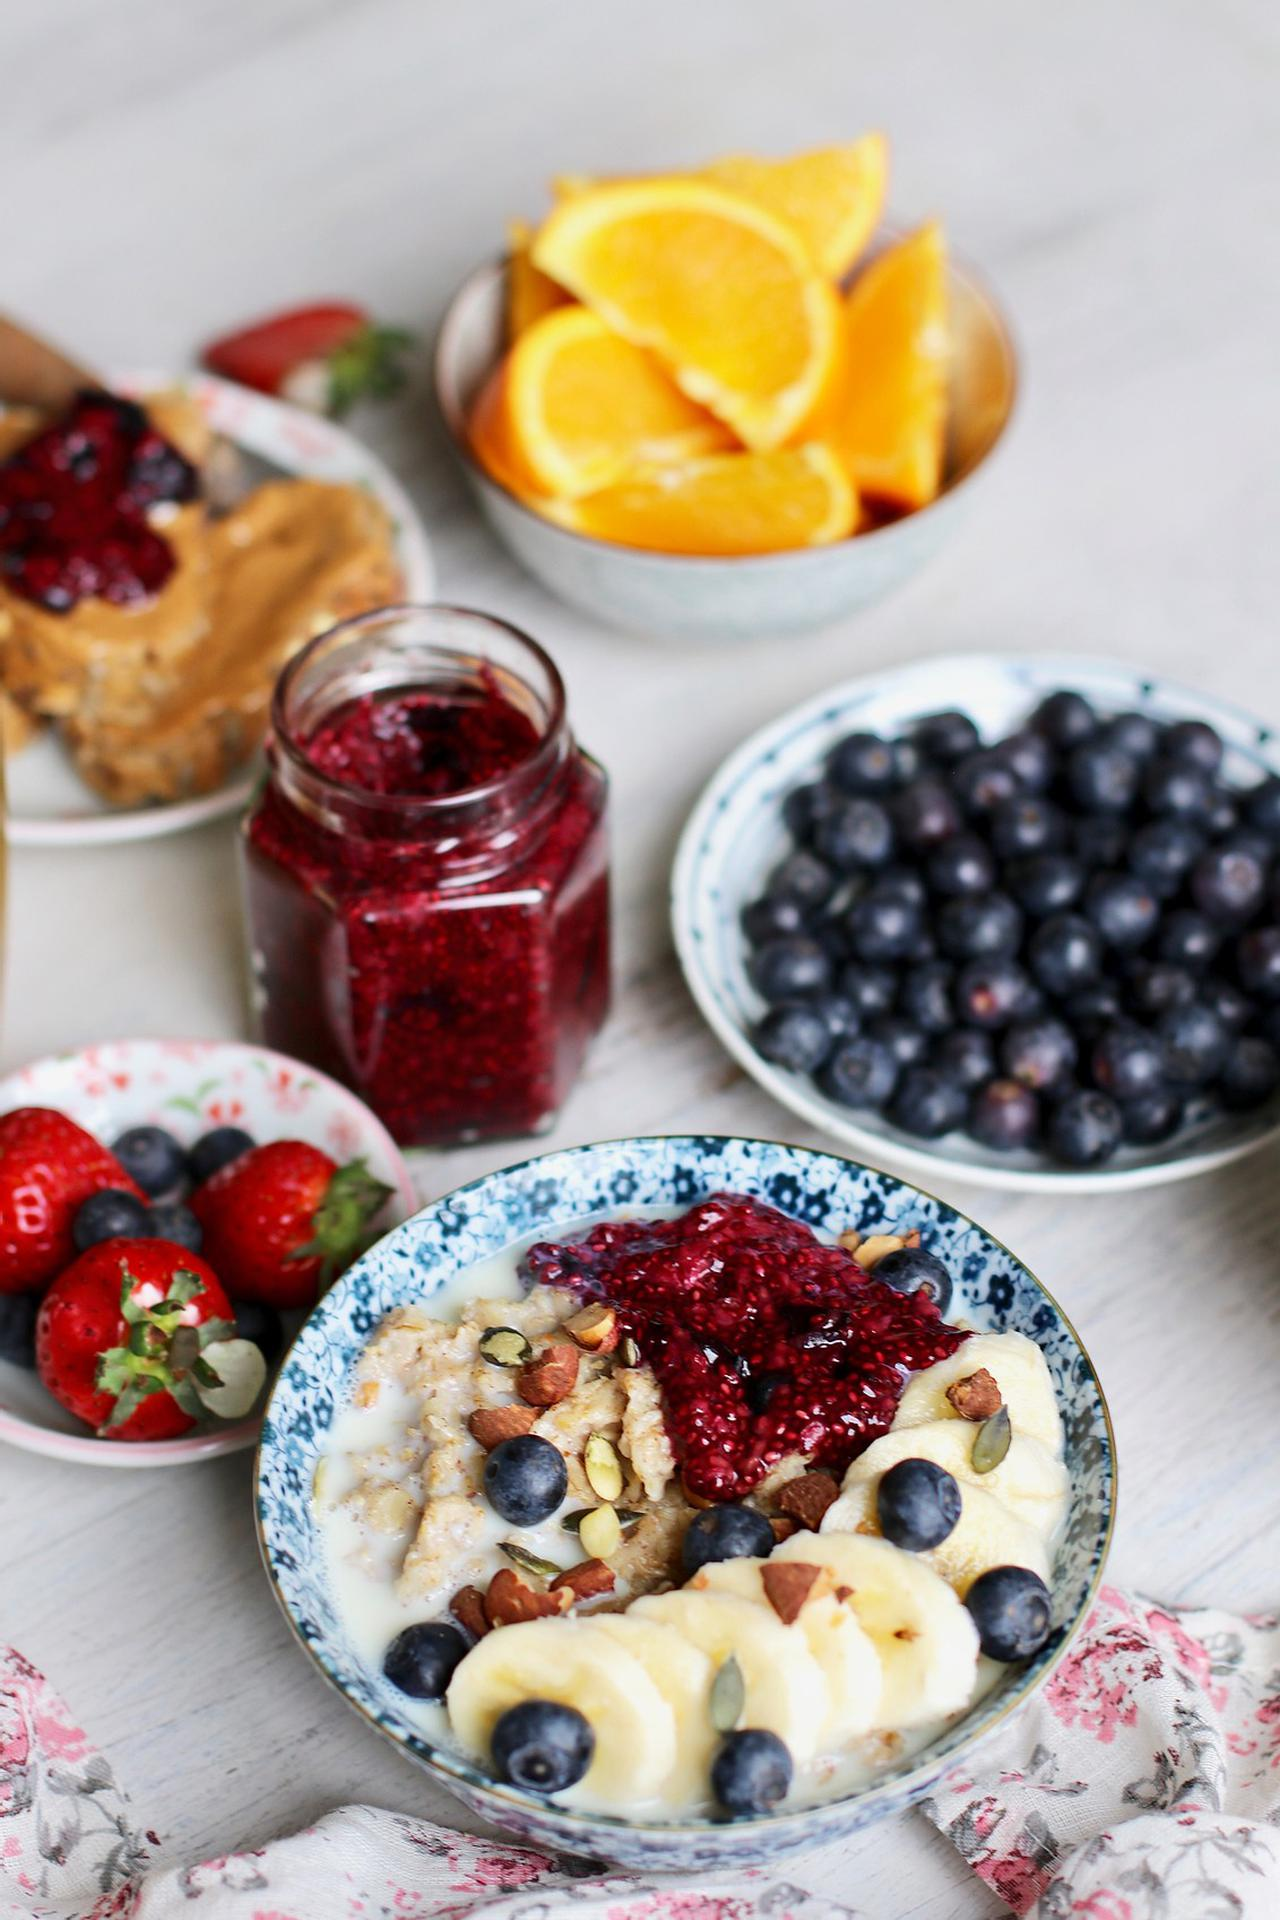 Main image of Easy Berry Chia Seed Jam